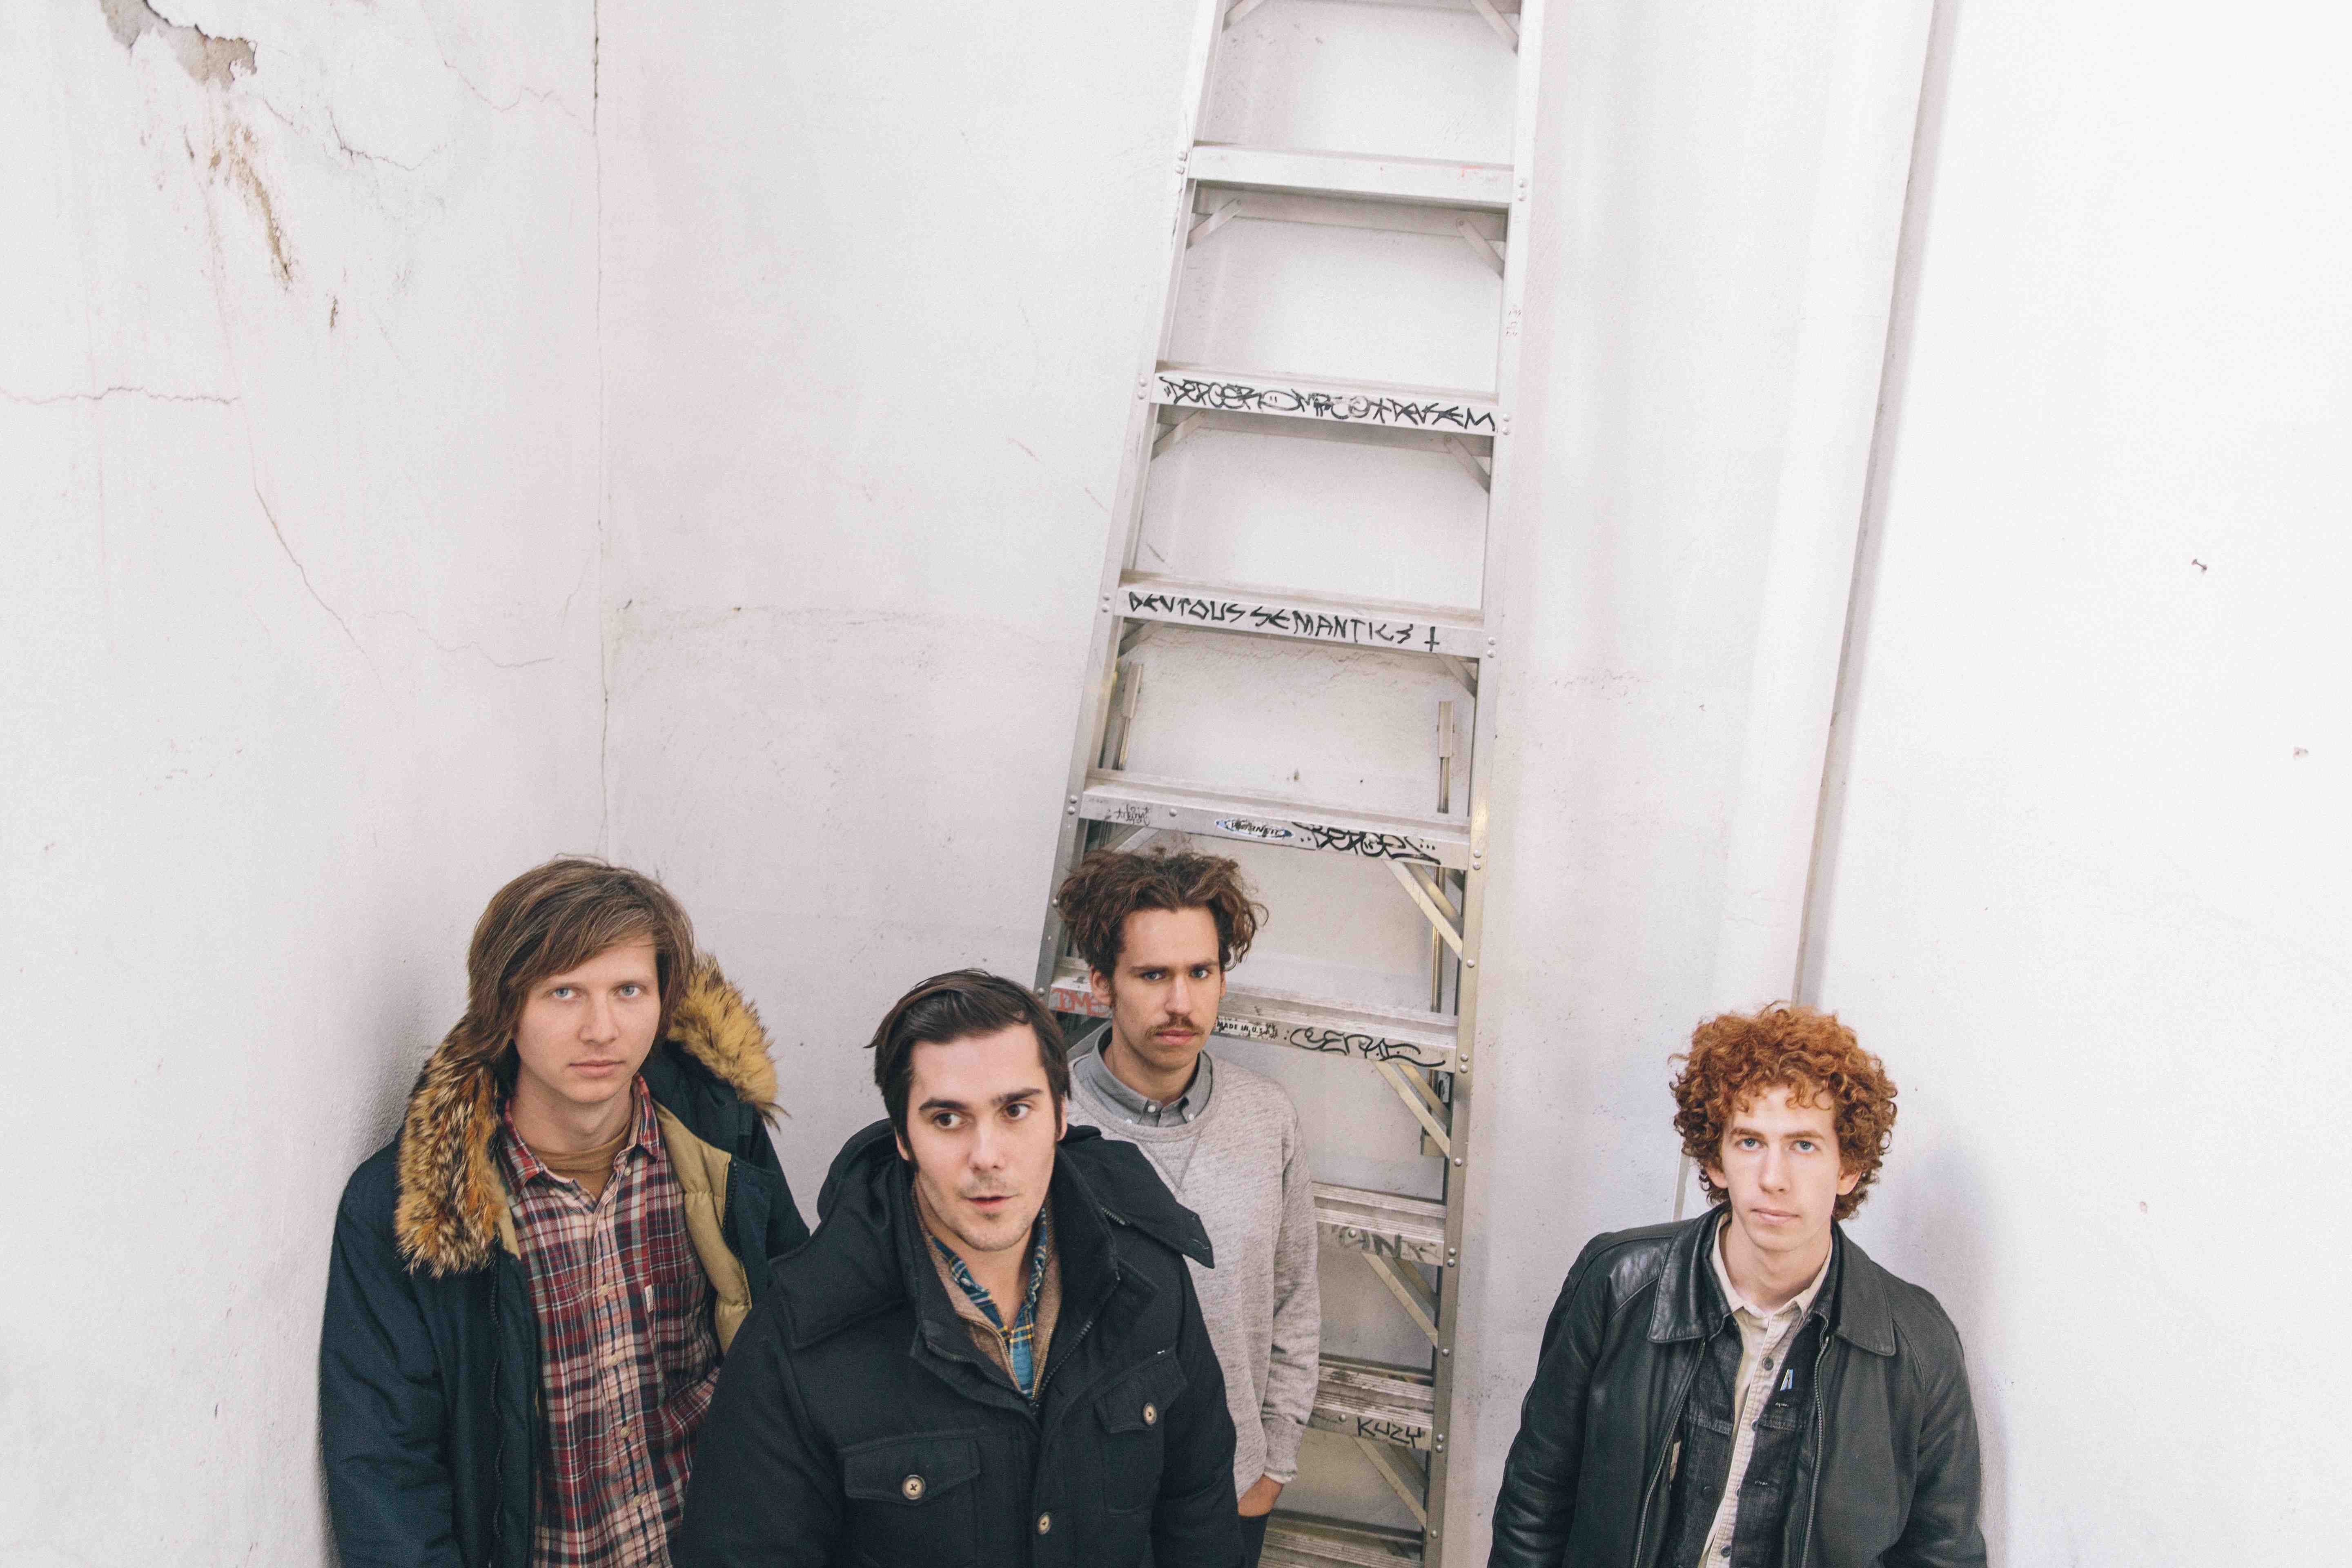 Parquet Courts Us At Meetfactory On October 19